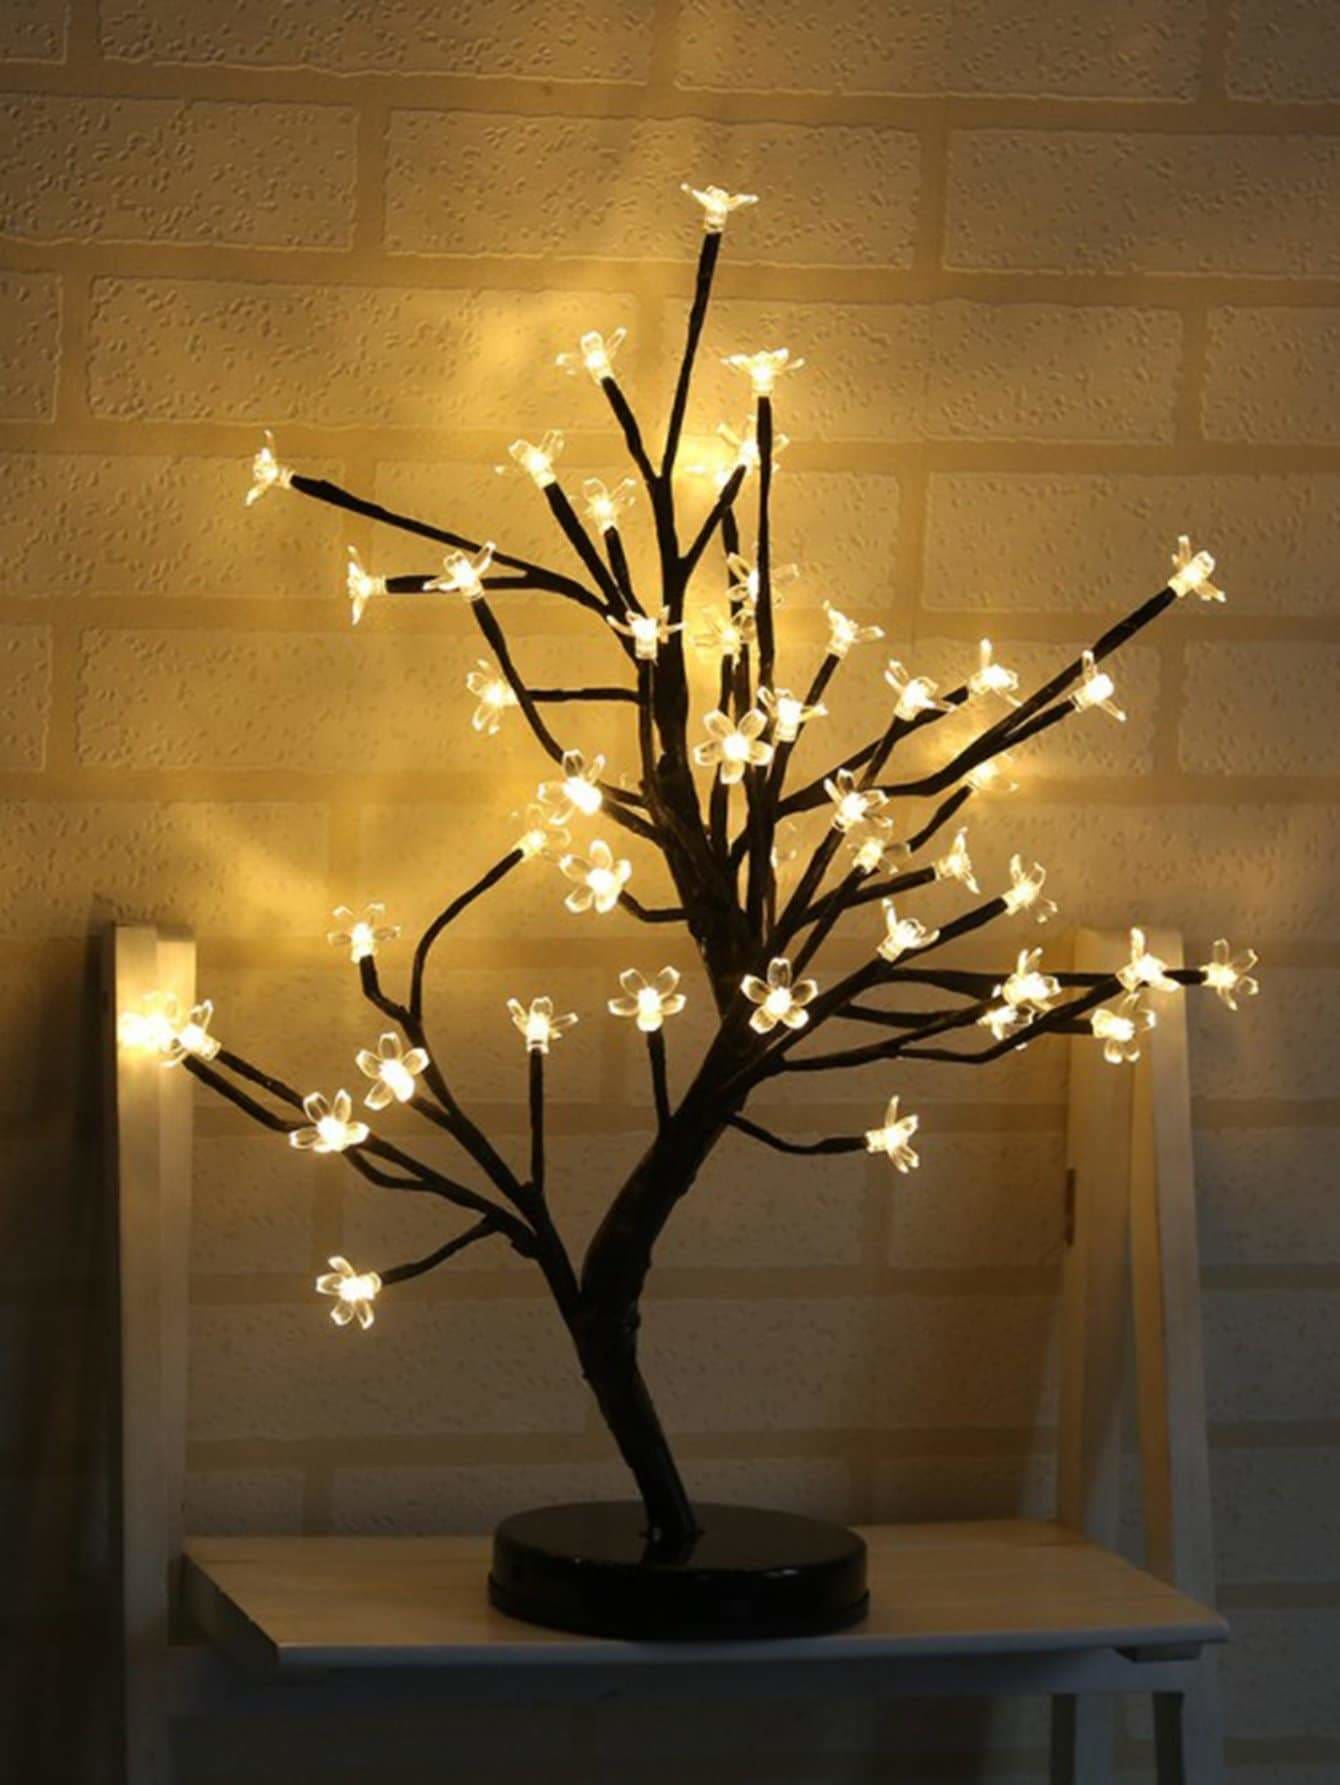 20pcs Bulb Tree Shaped Table Lamp 12V - Lighting & Lamps